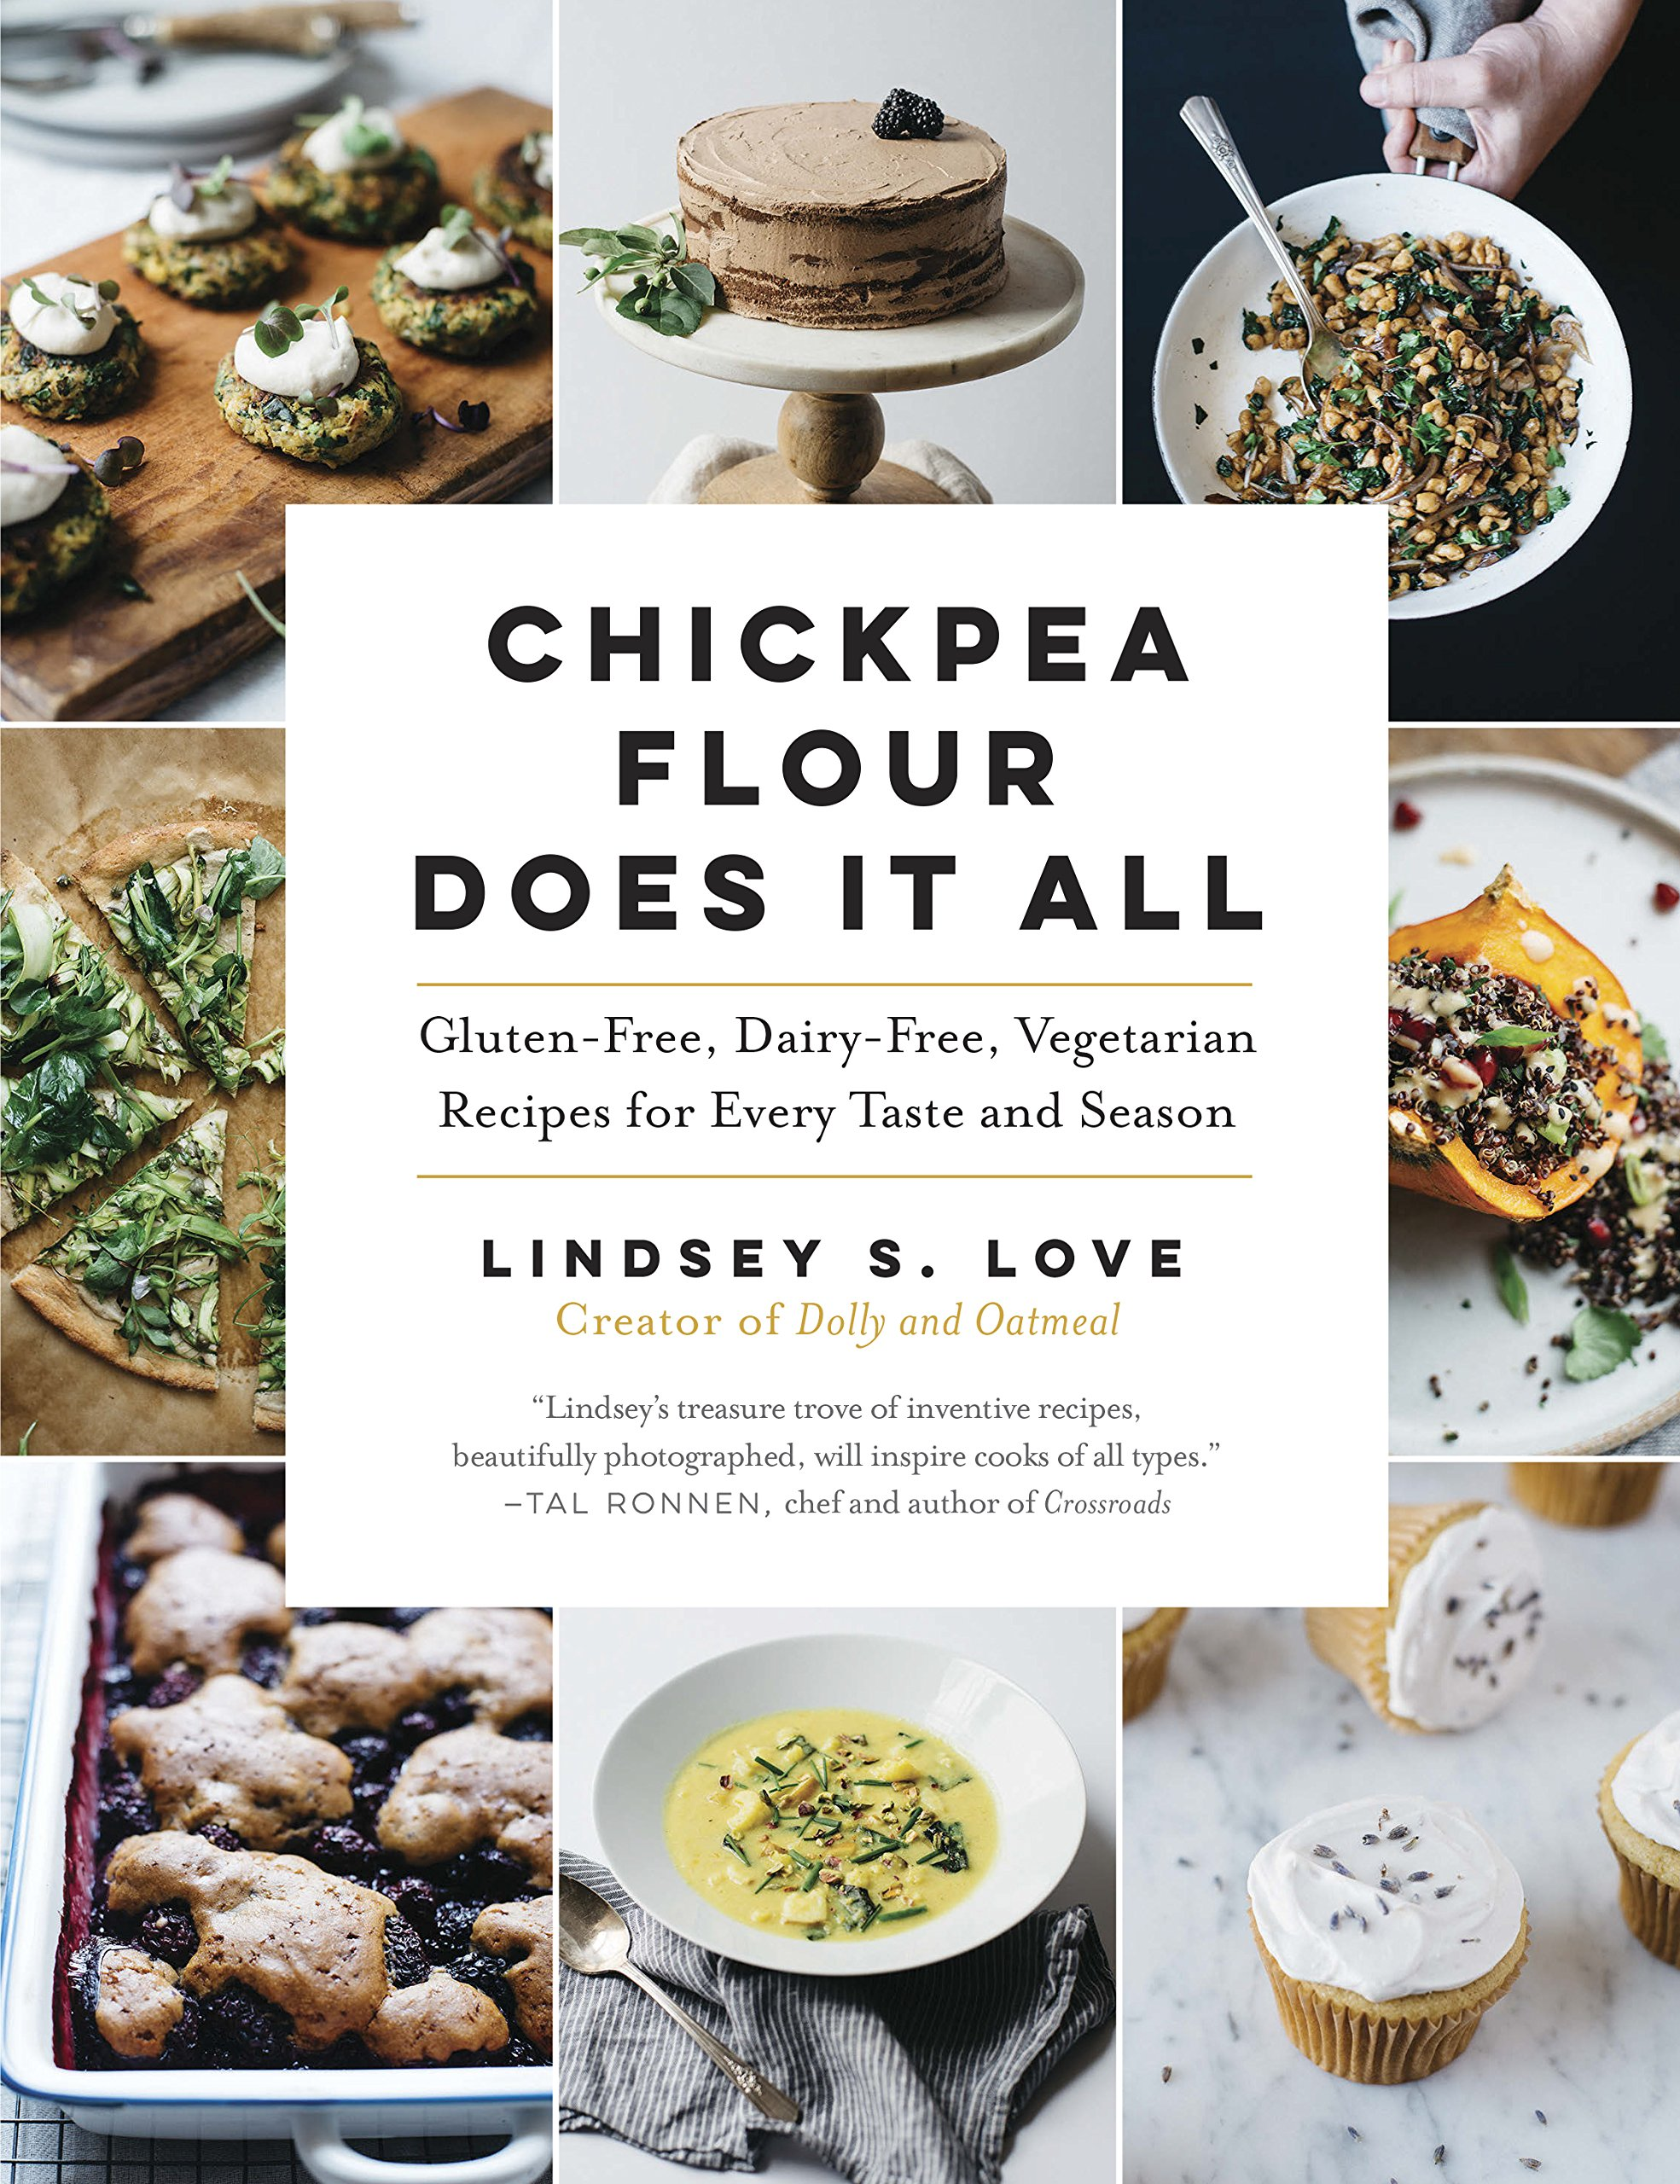 Chickpea Flour Does It All: Gluten-Free, Dairy-Free, Vegetarian Recipes for Every Taste and Season by The Experiment